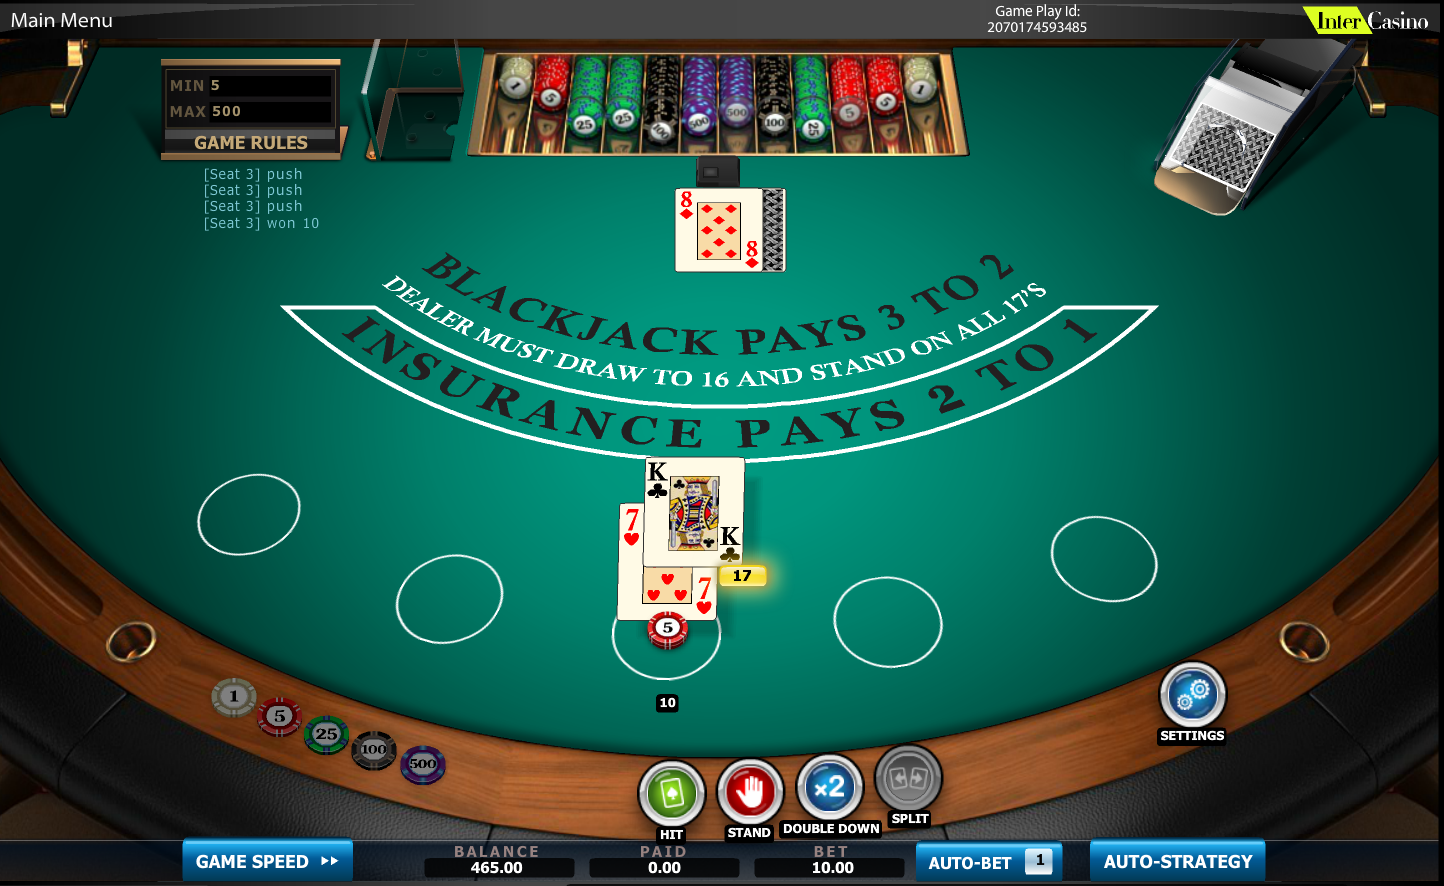 Free Bet Blackjack Vegas